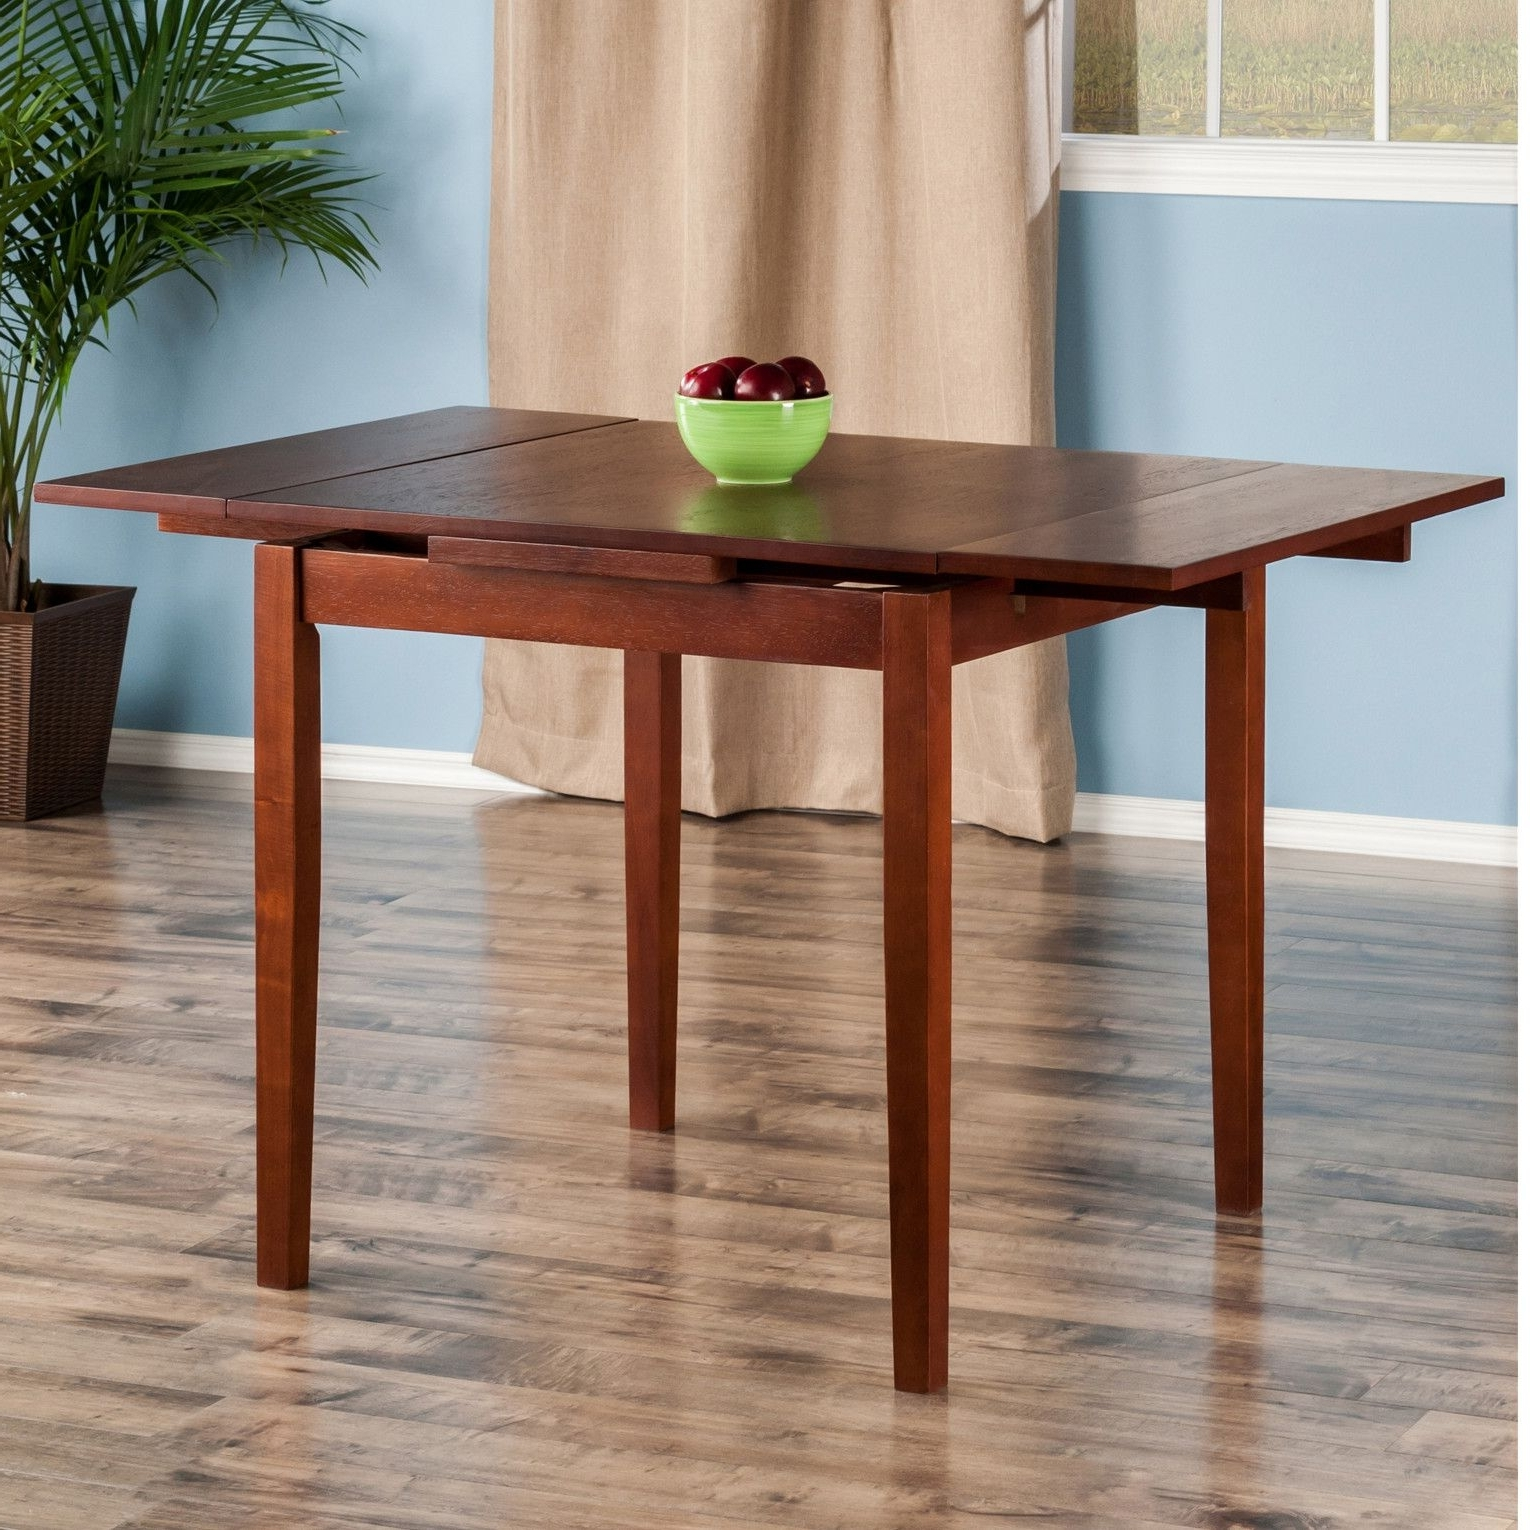 Extendable Dining Table, Butcher With Regard To Square Extendable Dining Tables And Chairs (View 10 of 25)